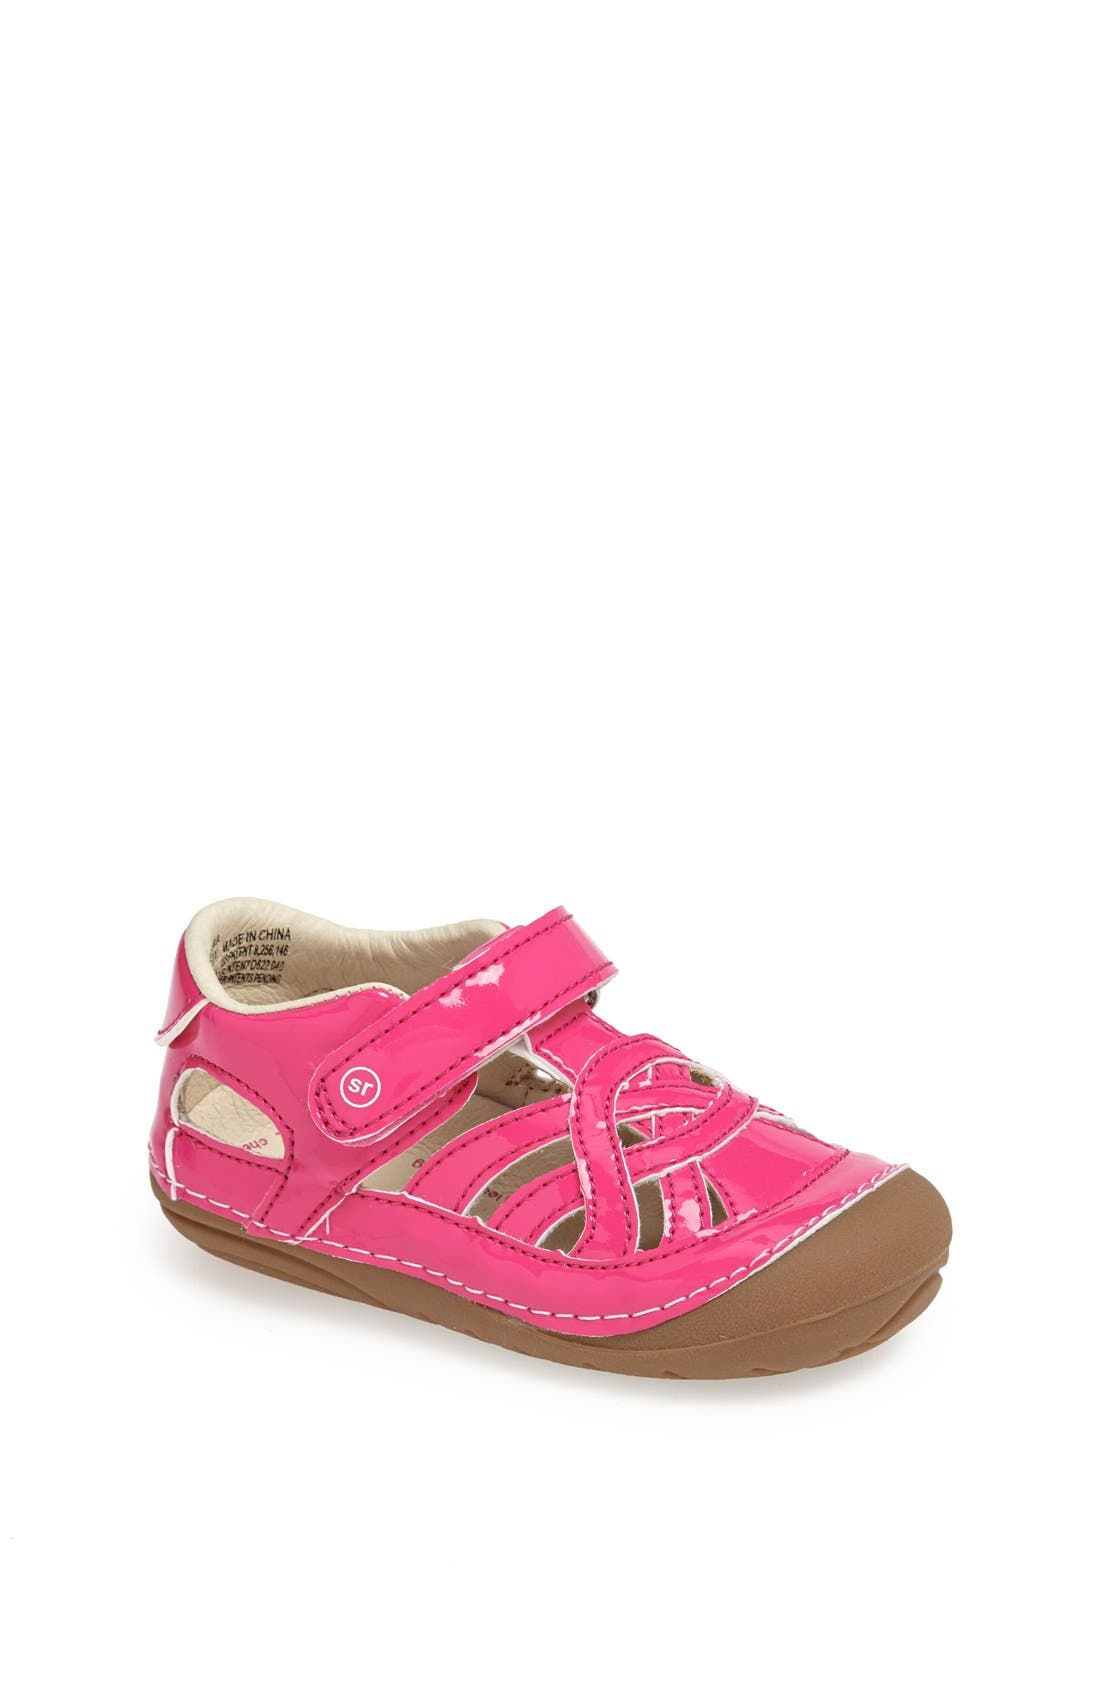 Main Image - Stride Rite 'Uma' Slip-On (Baby & Walker)